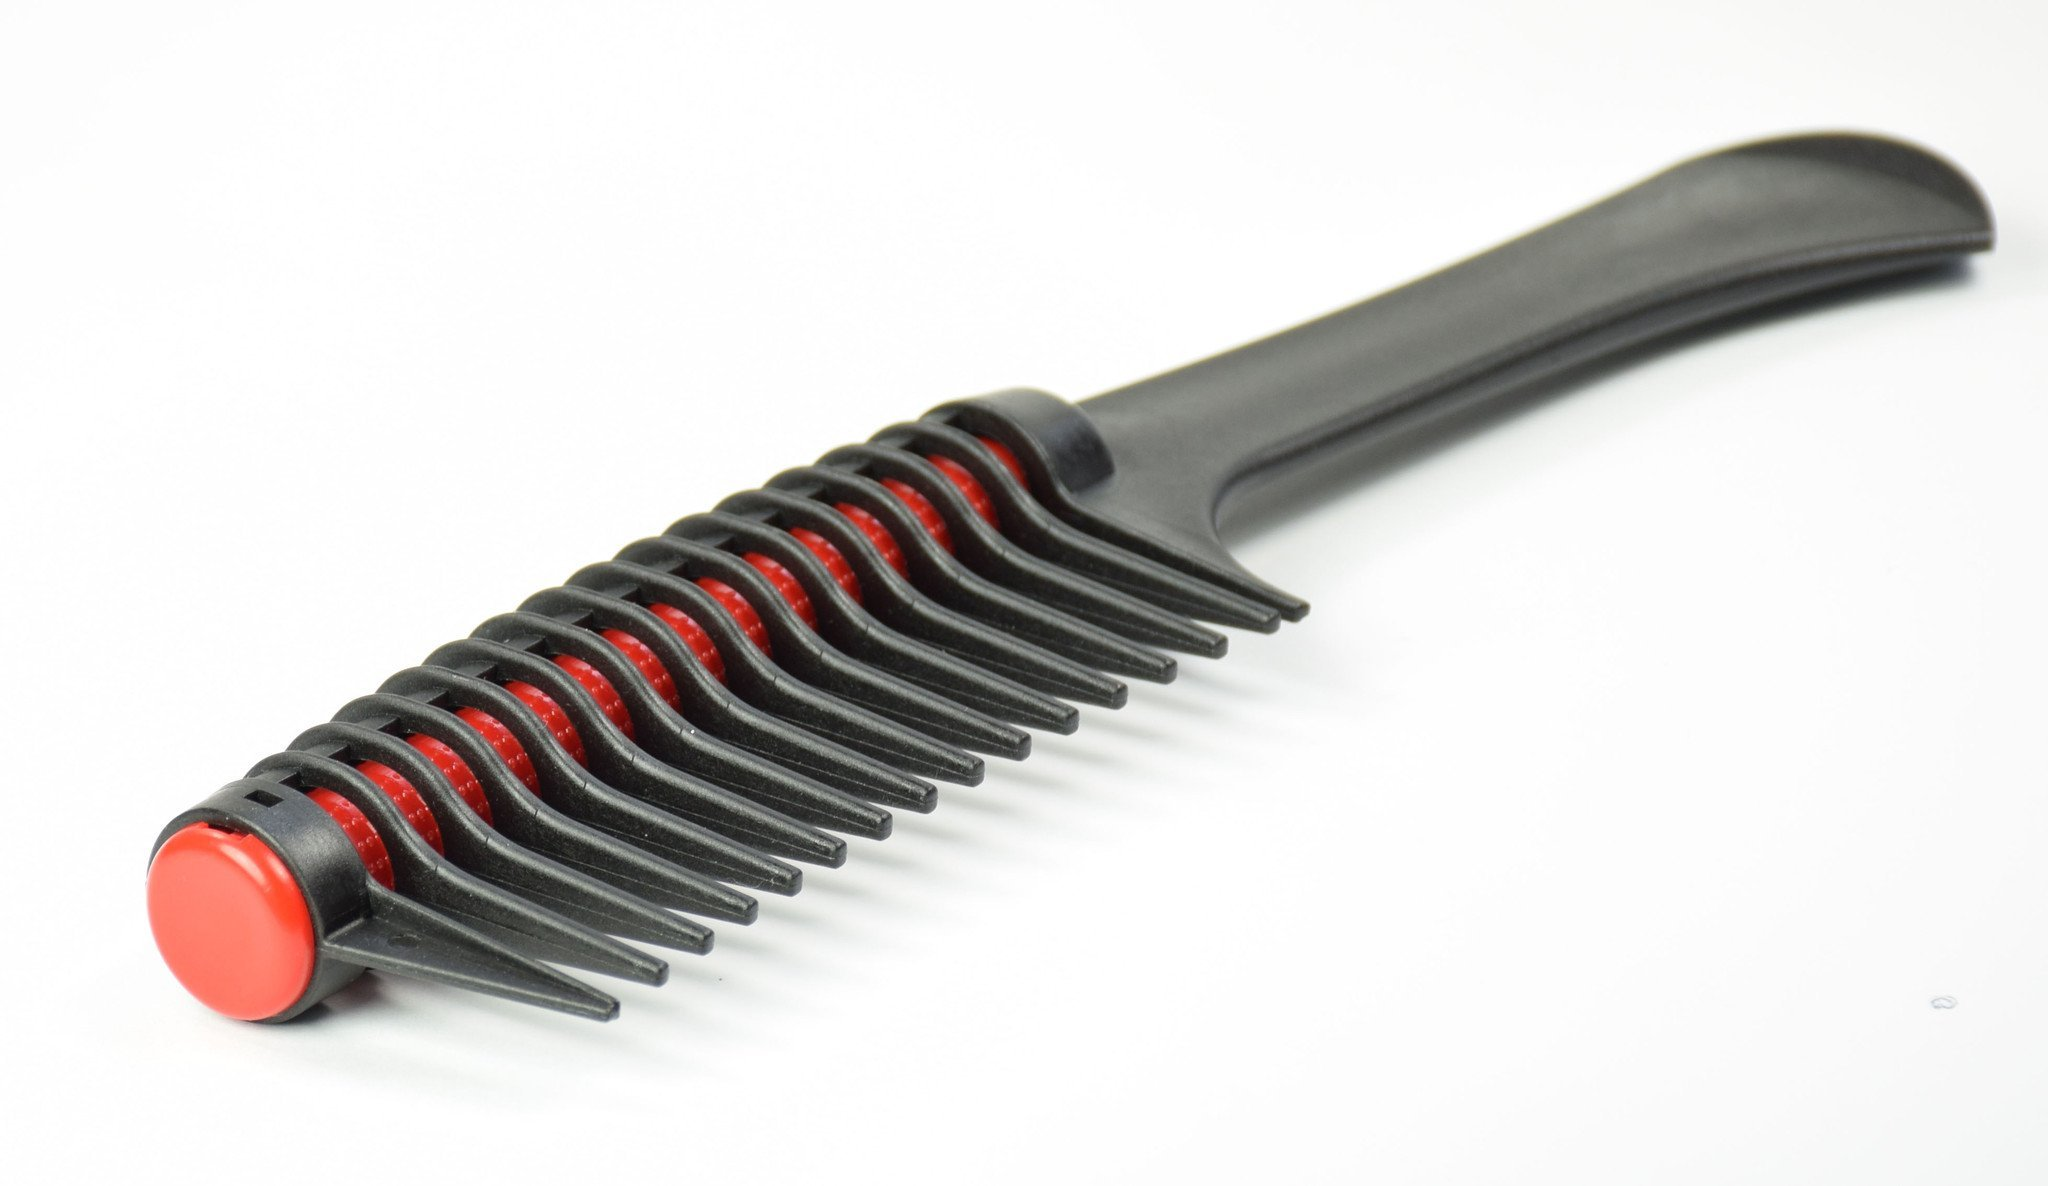 "Professional Anti Splicing & Detangling Roller Comb, Hair Comb, Integrated Roller 9"" by Imrue Beauty"